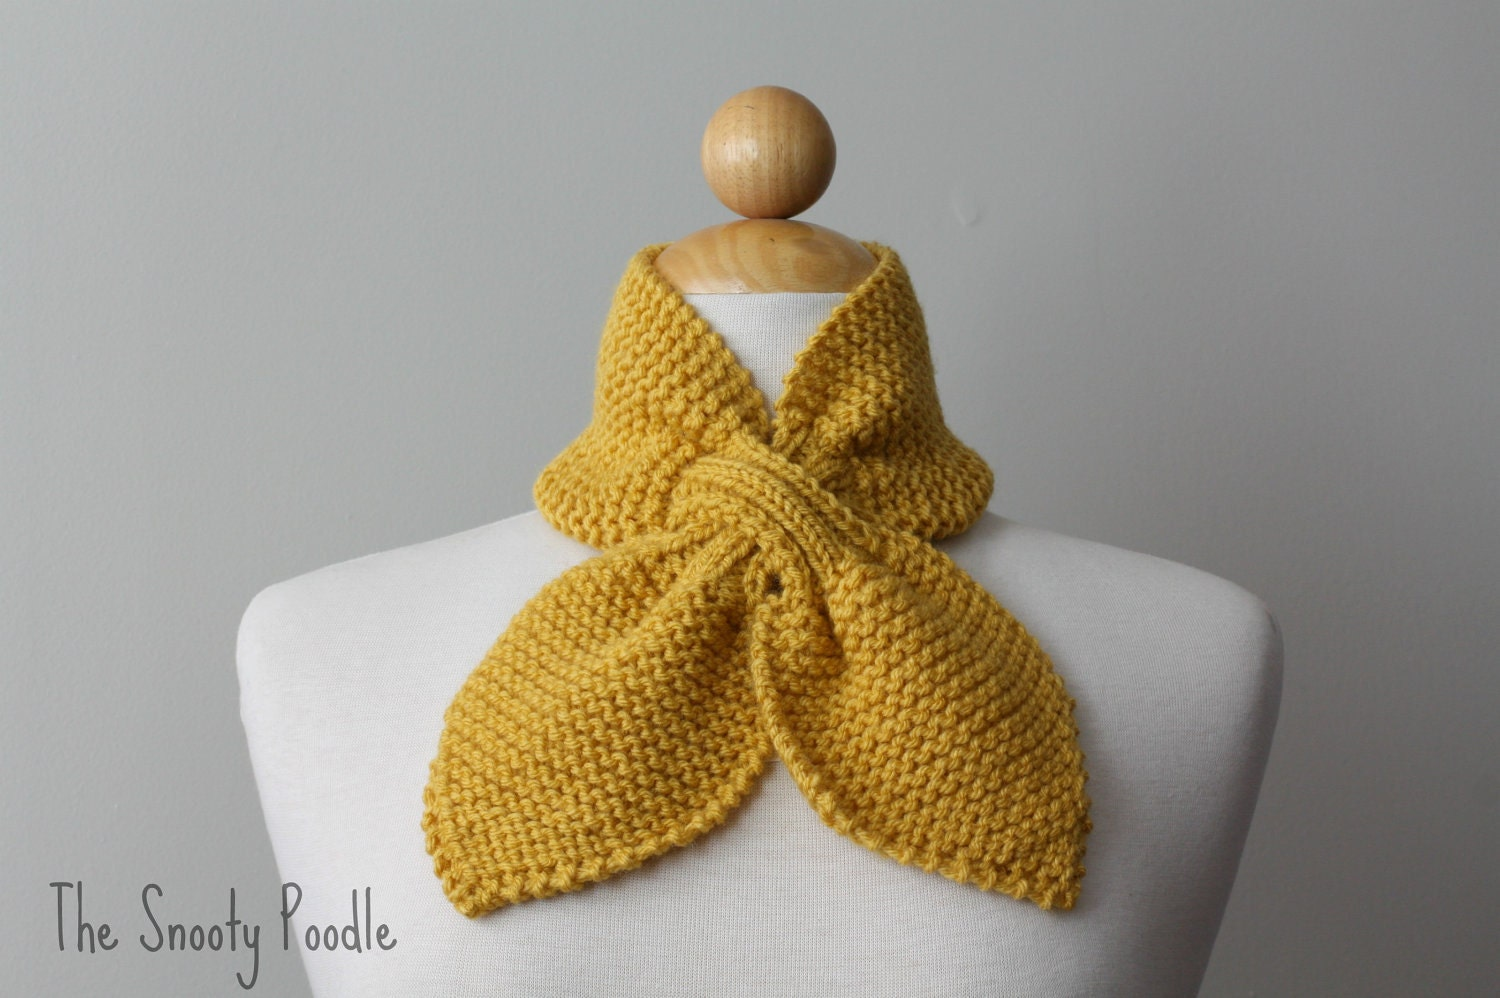 Knitting Patterns For Neck Warmers : Knitted Neck Warmer Bow Scarflette Mustard Yellow